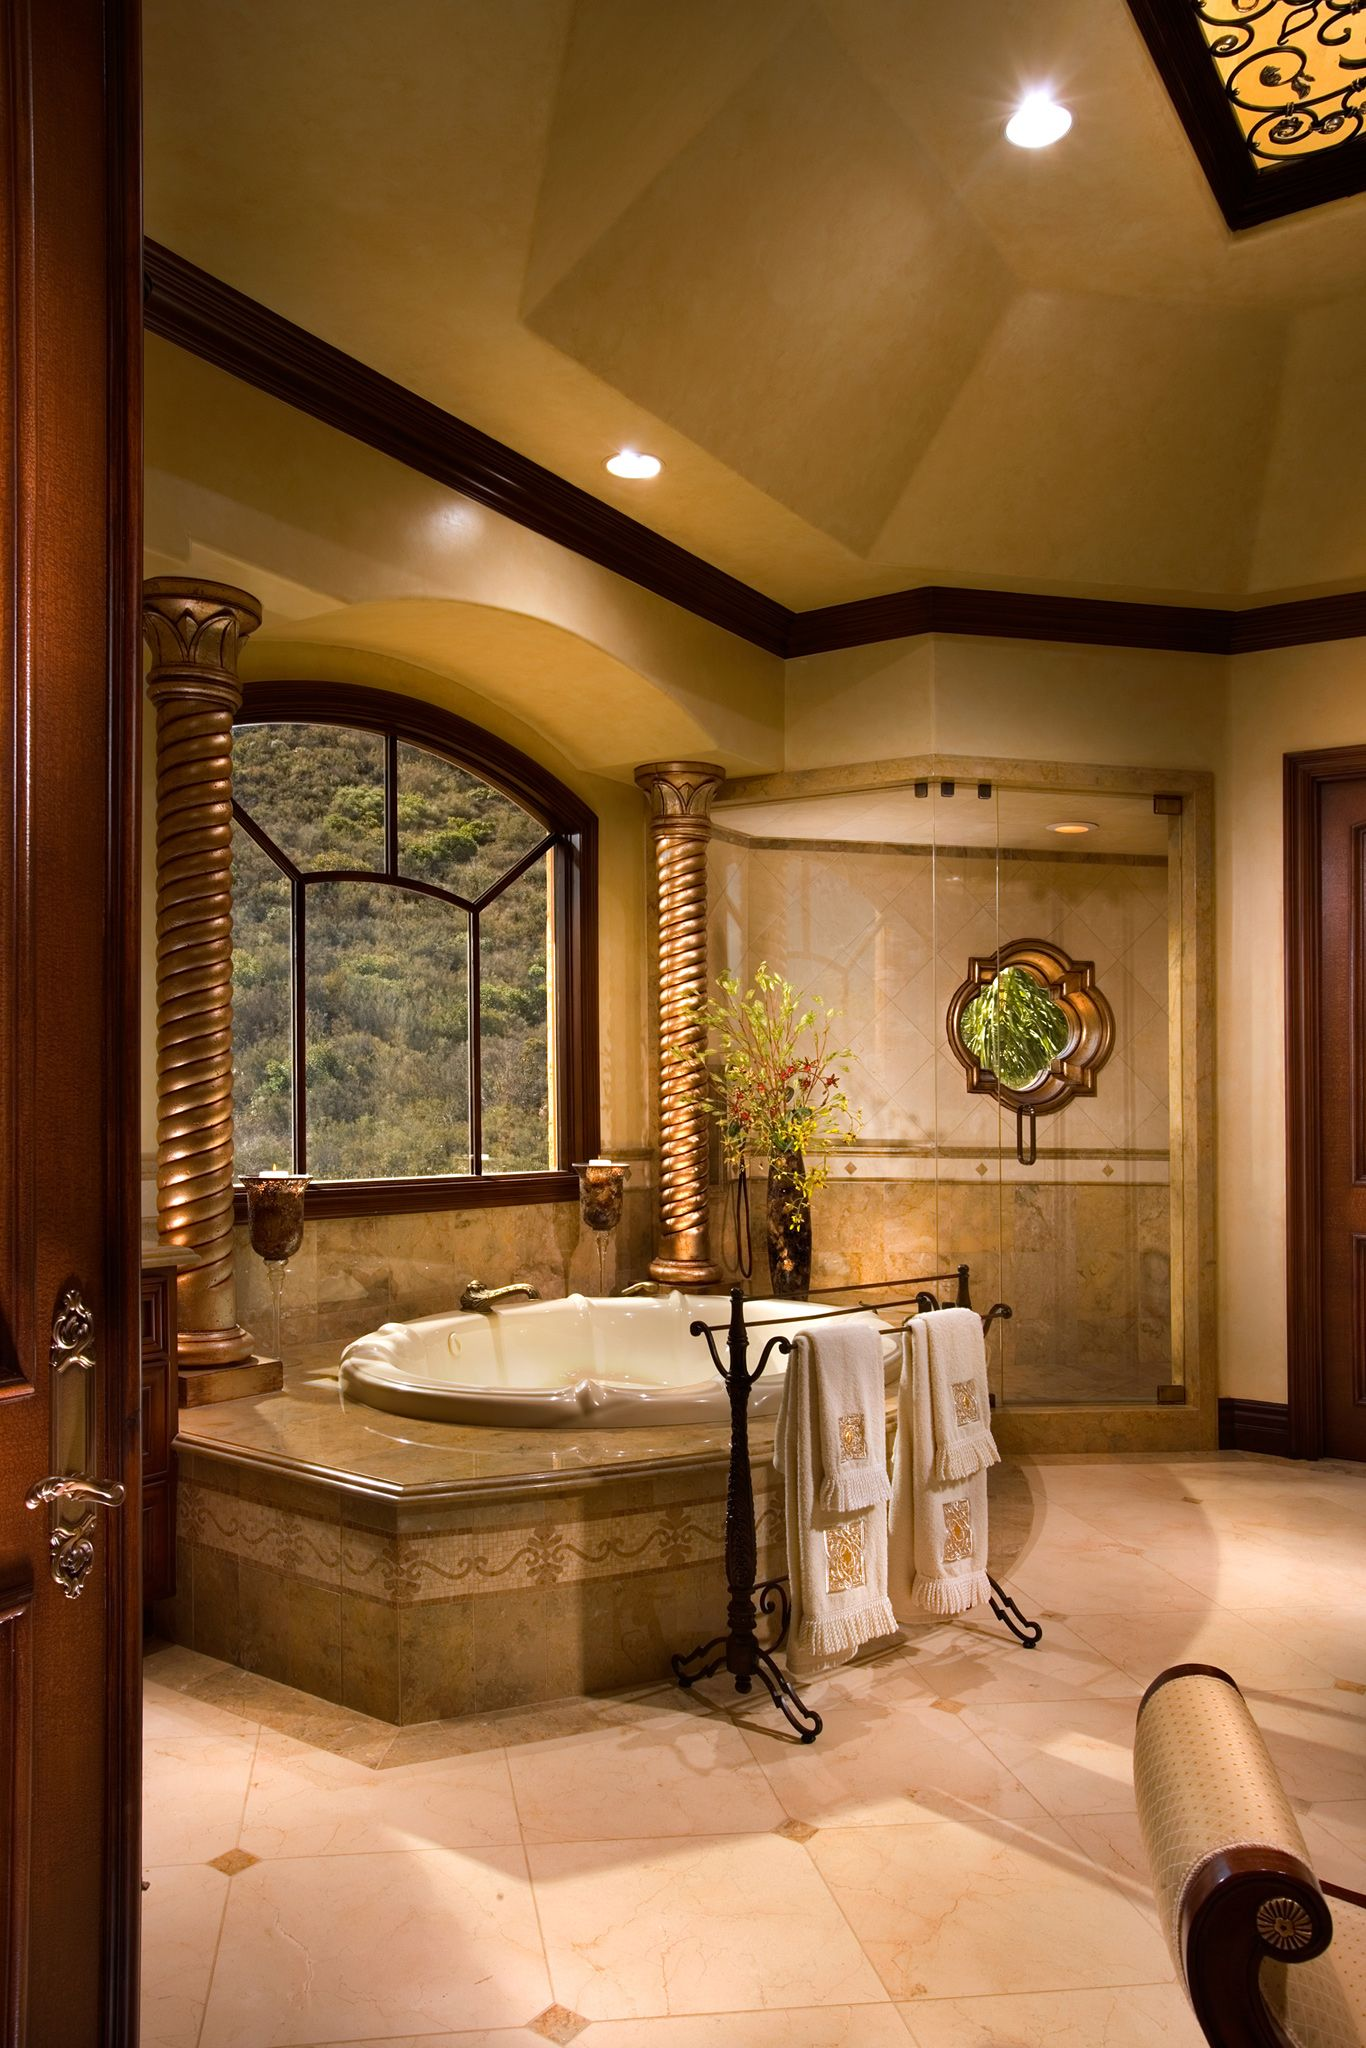 That One Thing Everyone Wants After Getting Rich Is A Luxurious Home With Mesmerizing Bathrooms And A Dream Tub Is A Must In That Luxurious Bathroom